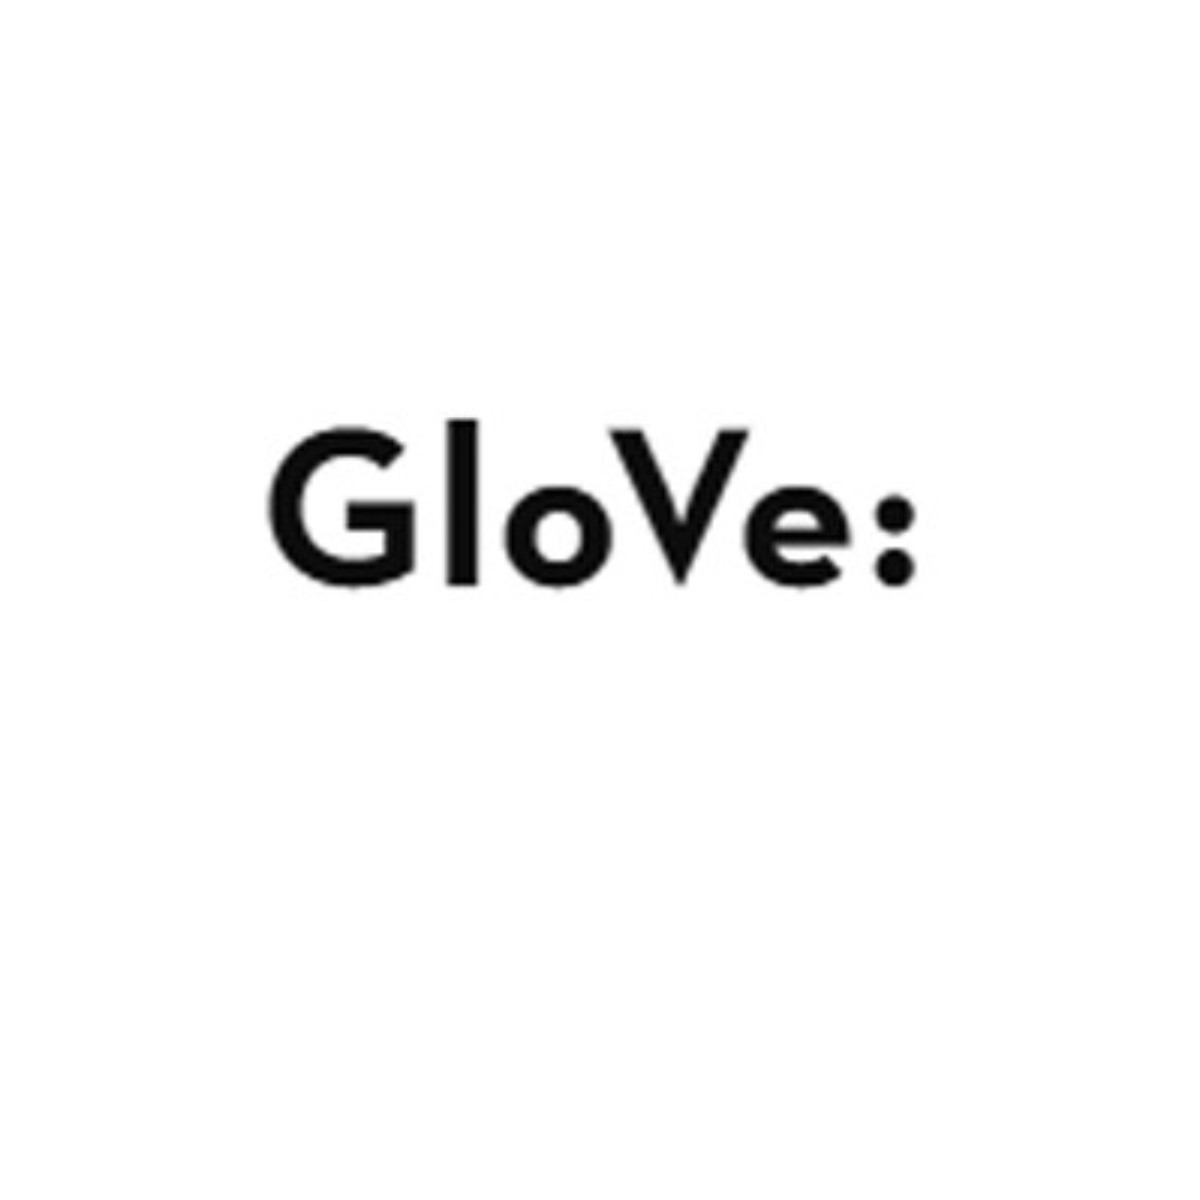 GloVe: Global Vectors for Word Representation | Kaggle